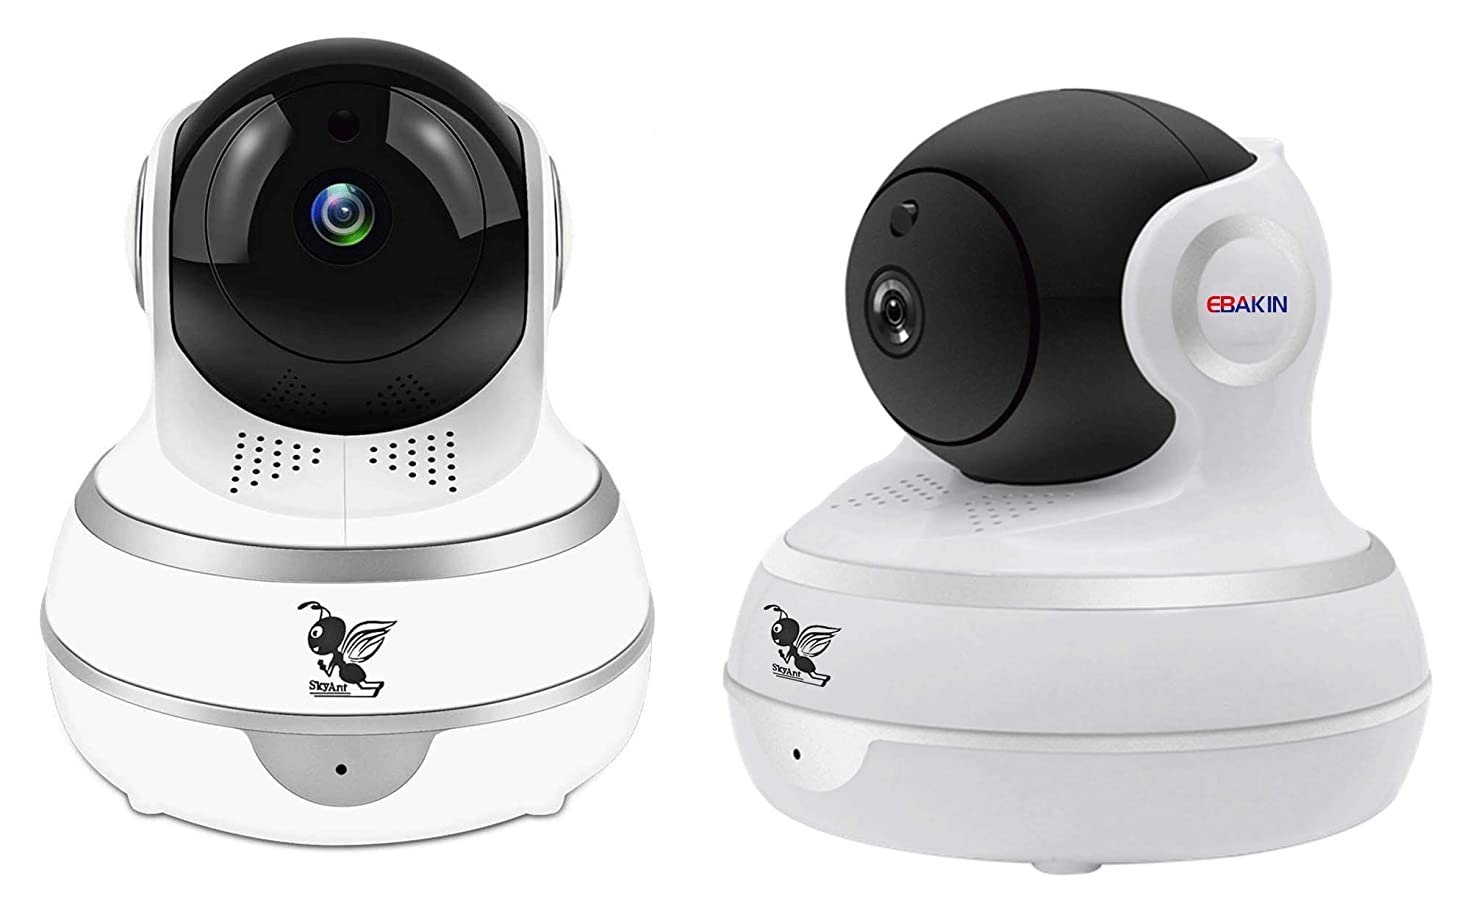 EBAKIN 1080P Security Indoor Smart Camera, Wireless HD Home Surveillance IP Camera with Real-time Activity Alerts Two-Way Audio Night Vision Baby Camera Panorama View Infant Pet Office